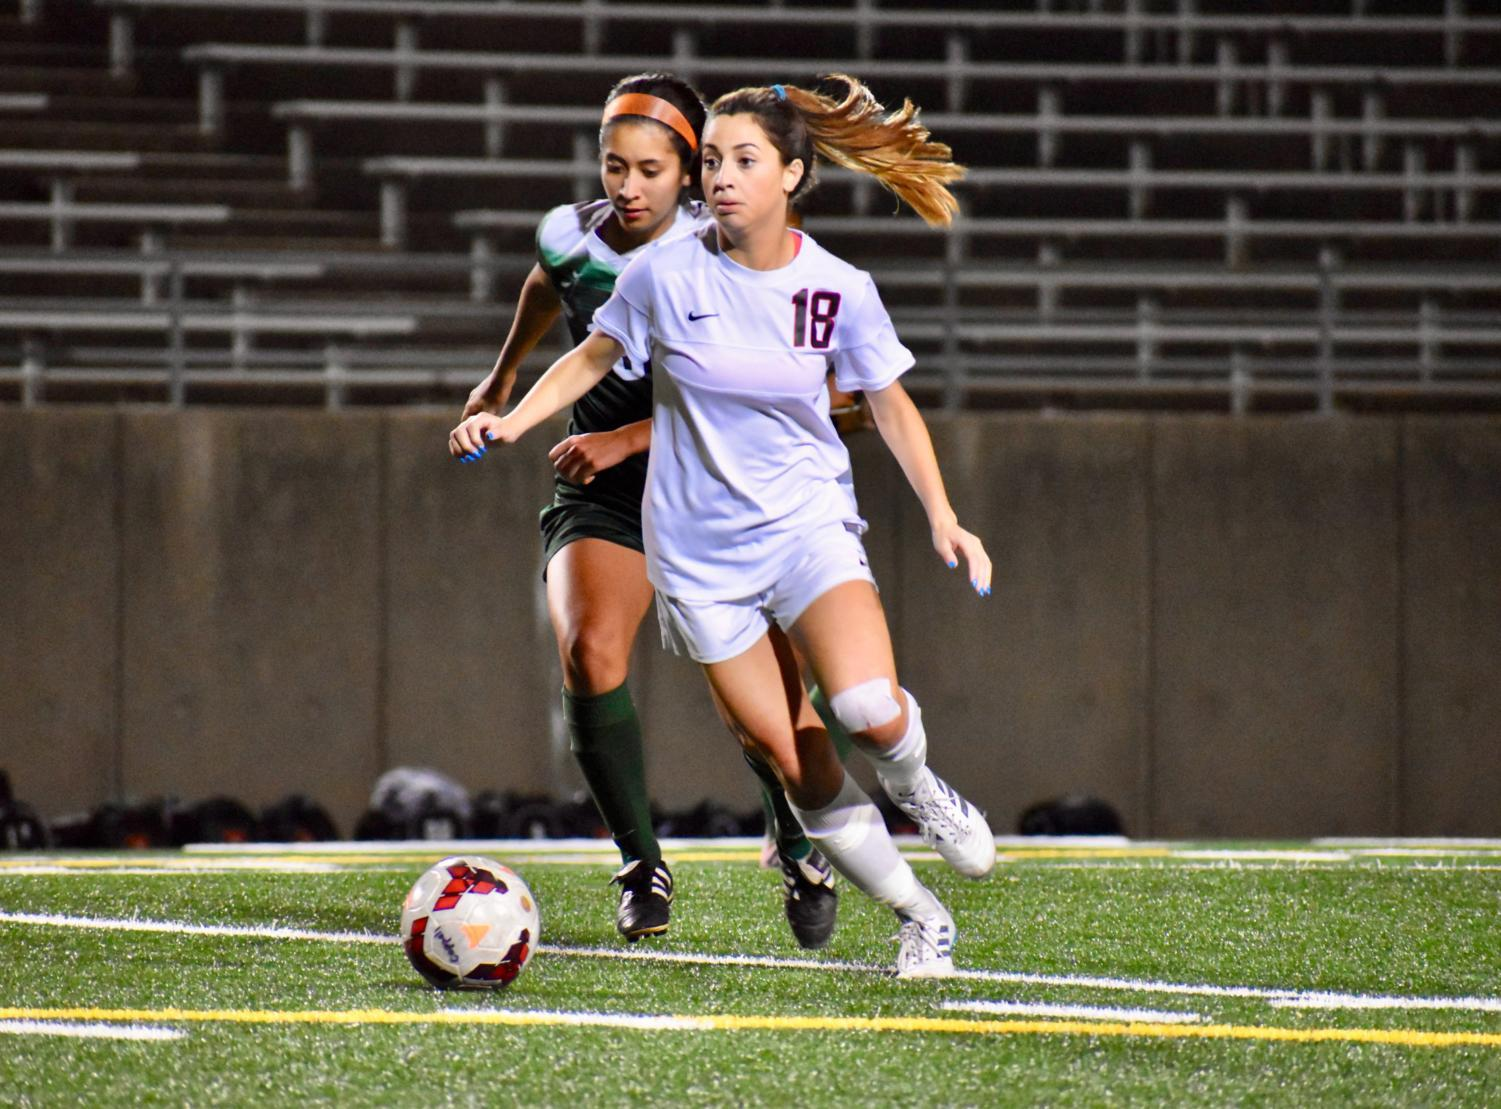 While keeping the opposing team from scoring, Coppell High School sophomore defender Montserrat Lomeli looks for an open pass during the game against the Naaman Lady Rangers on March 29 at the John Clark Field. The Coppell Cowgirls will play again On Friday at Kelly Reeves Athletic Complex in Round Rock.